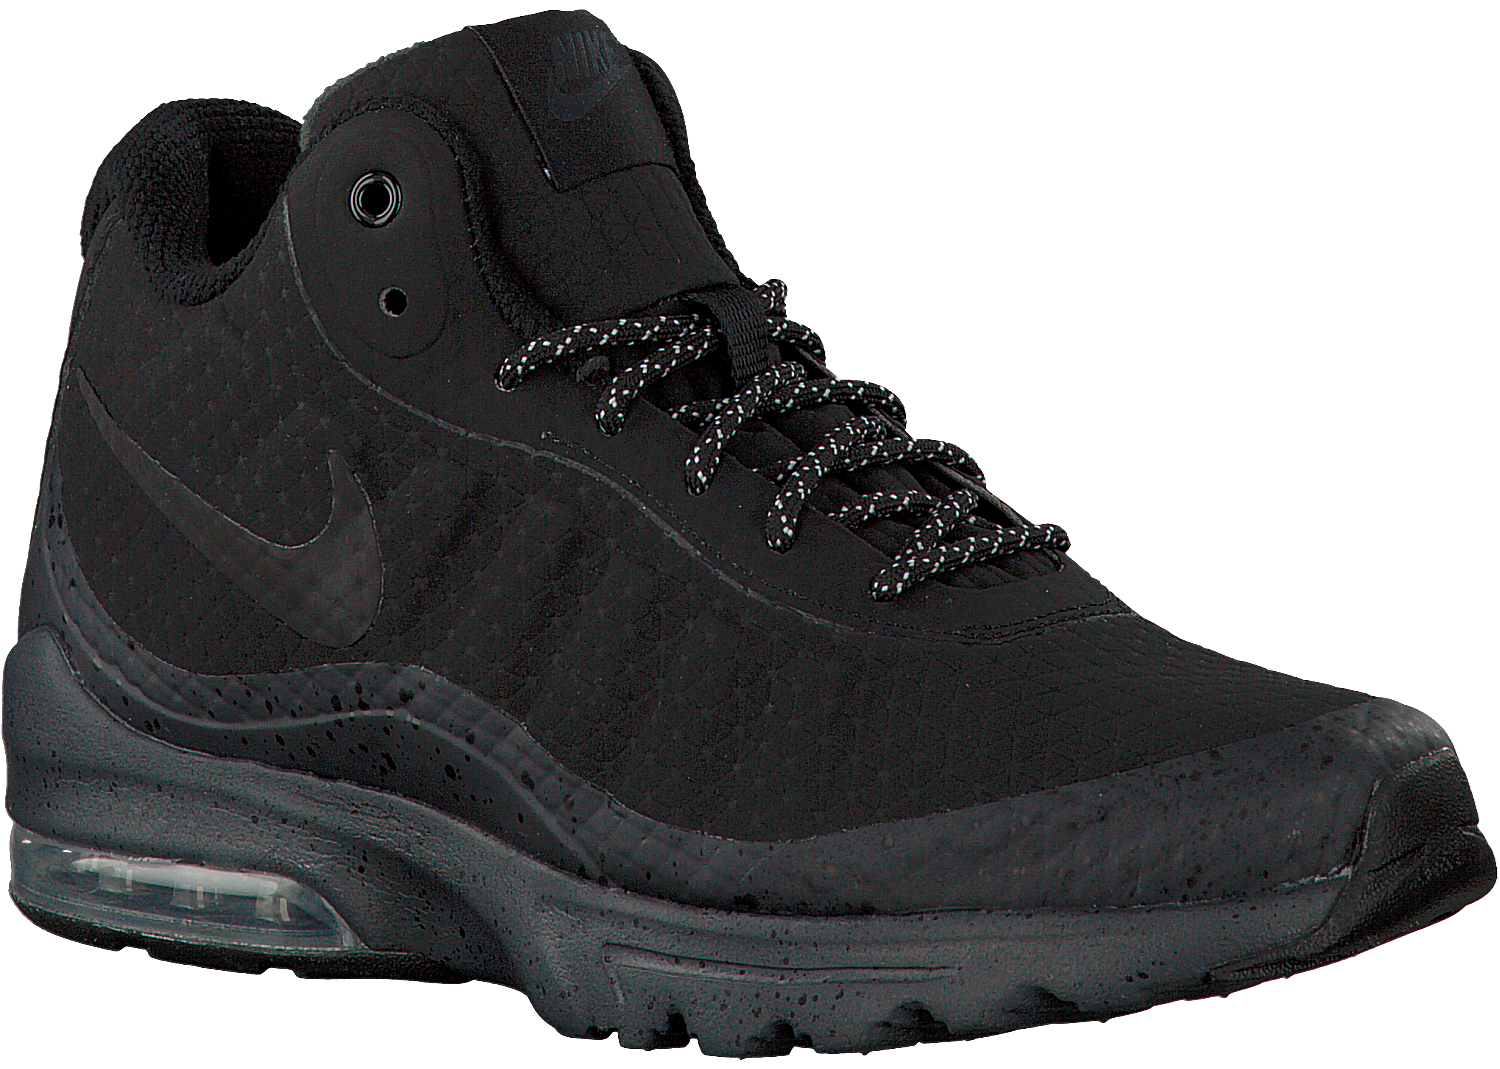 new styles 09e43 eca6e Zwarte NIKE Sneakers AIR MAX INVIGOR MID. NIKE. -30%. Previous